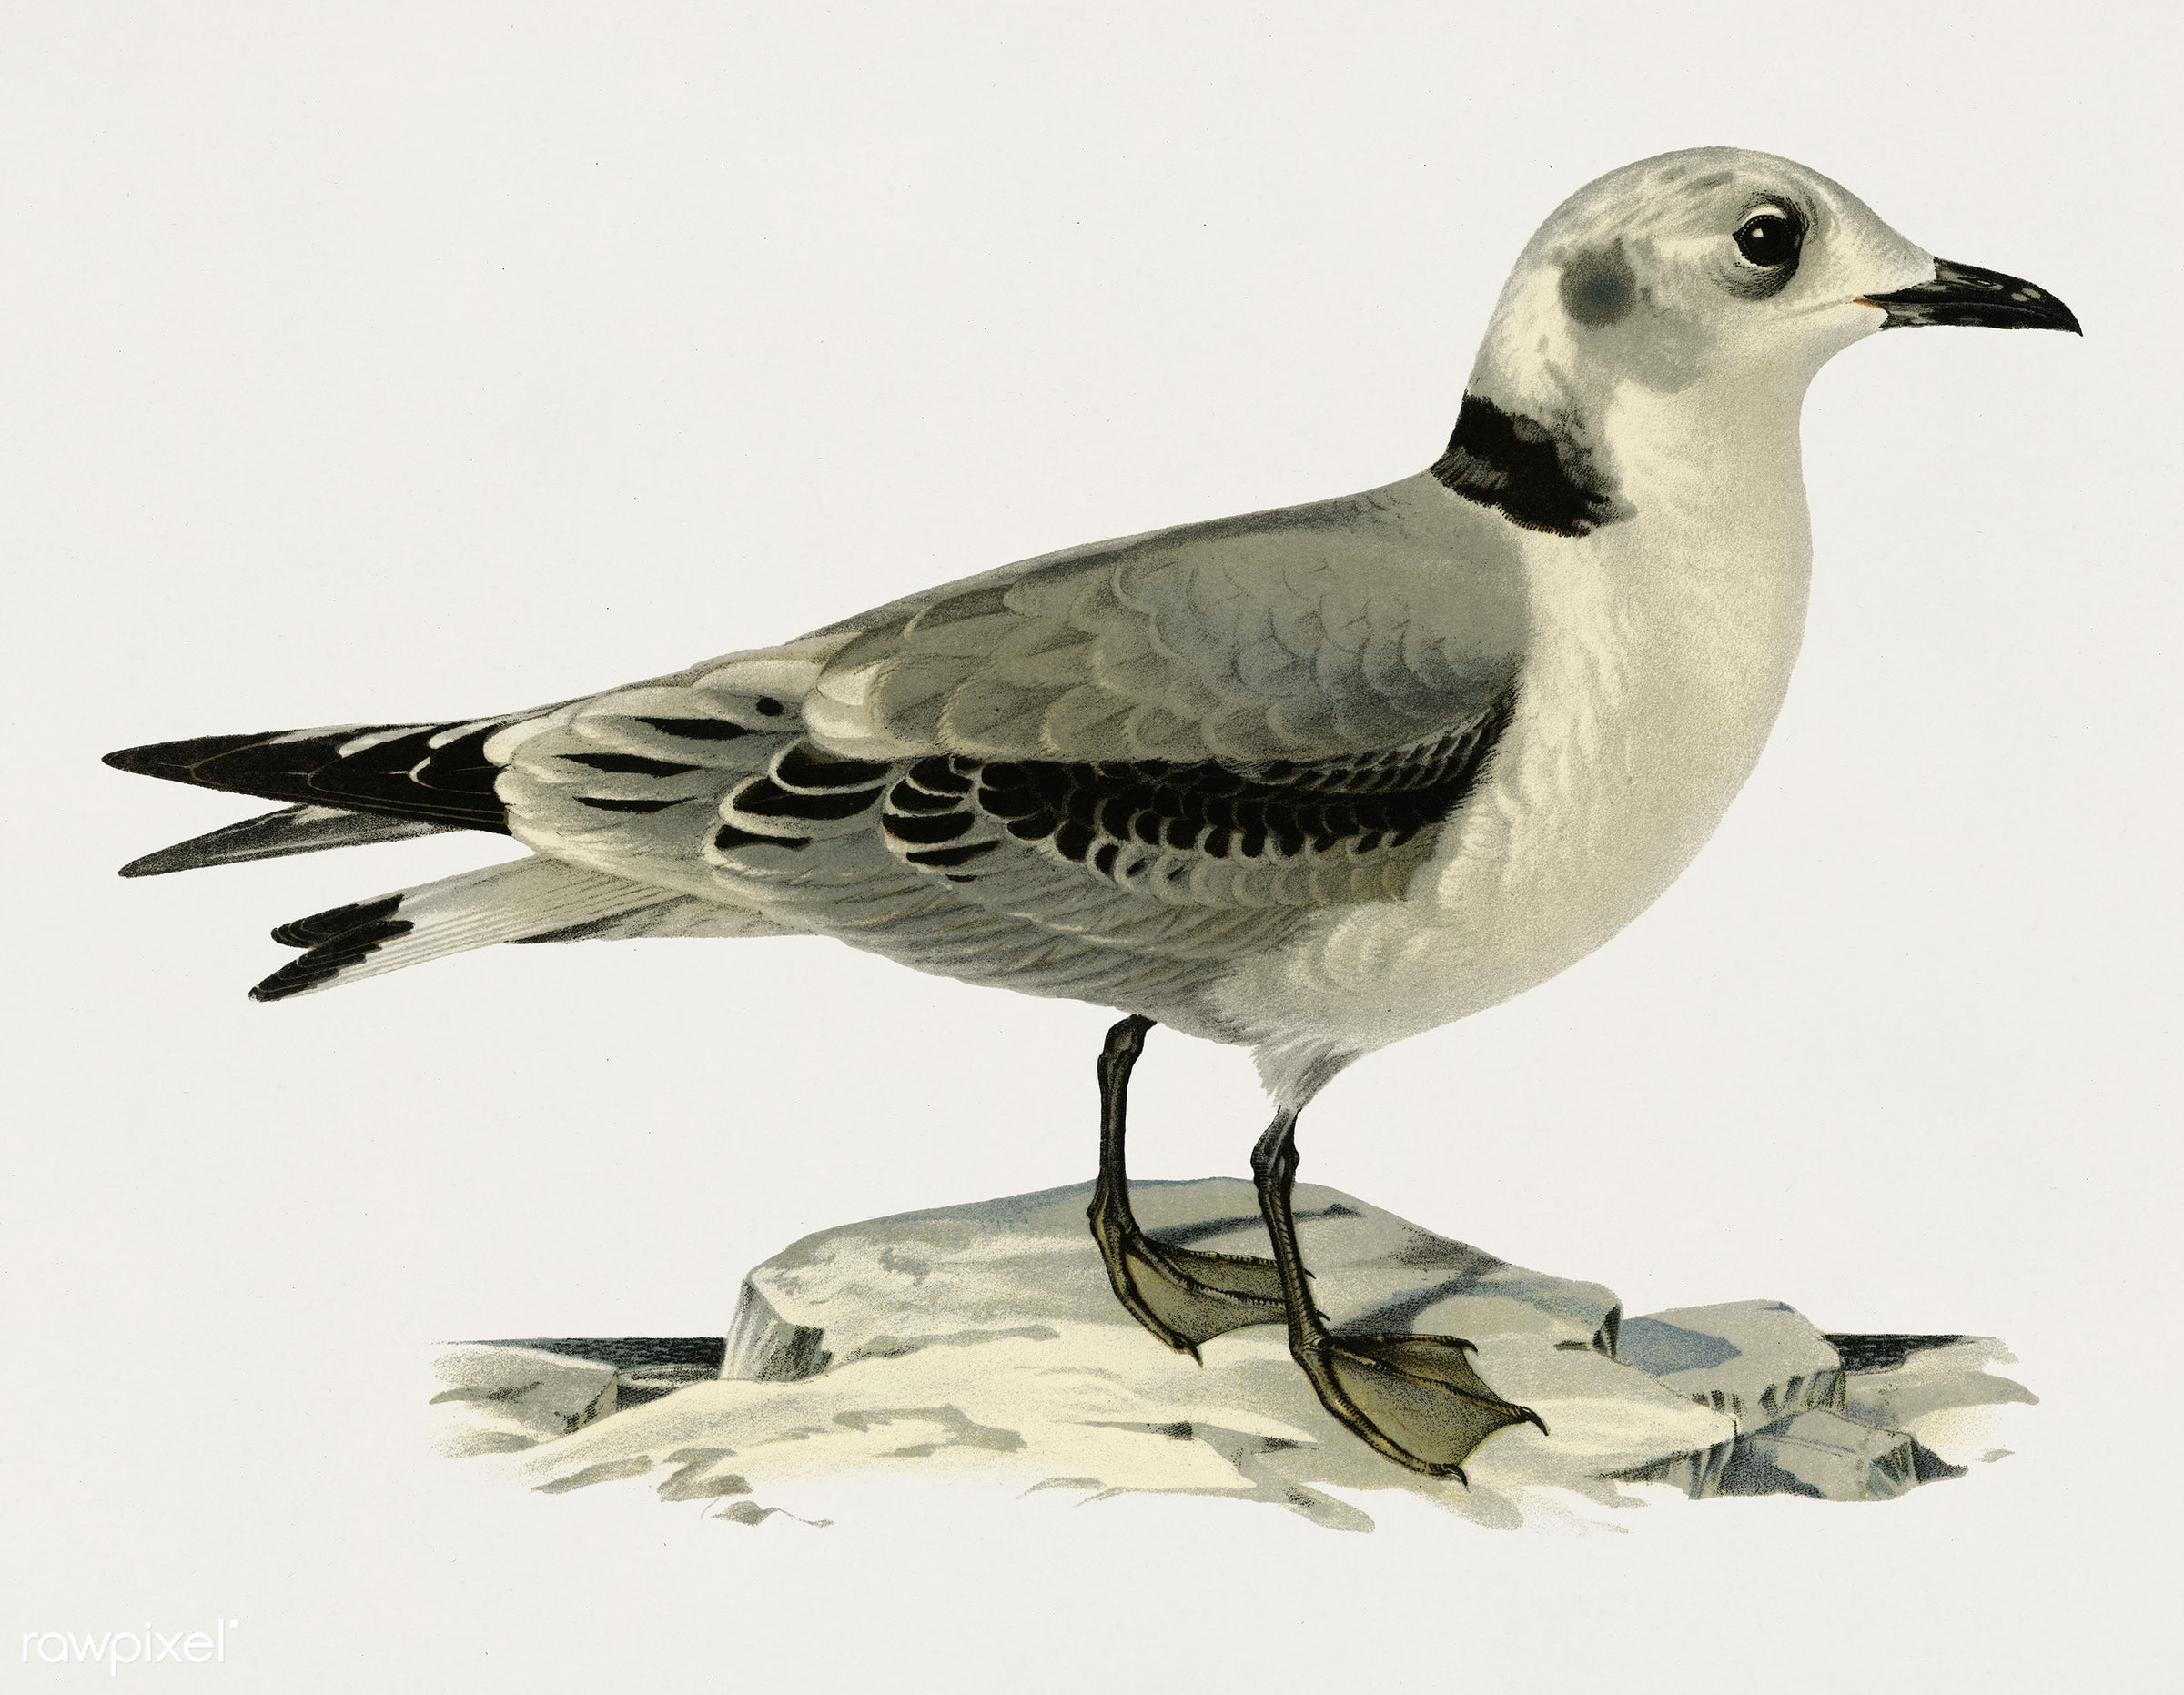 Black-legged kittiwake (Rissa Tridactyla) illustrated by the von Wright brothers. Digitally enhanced from our own 1929 folio...